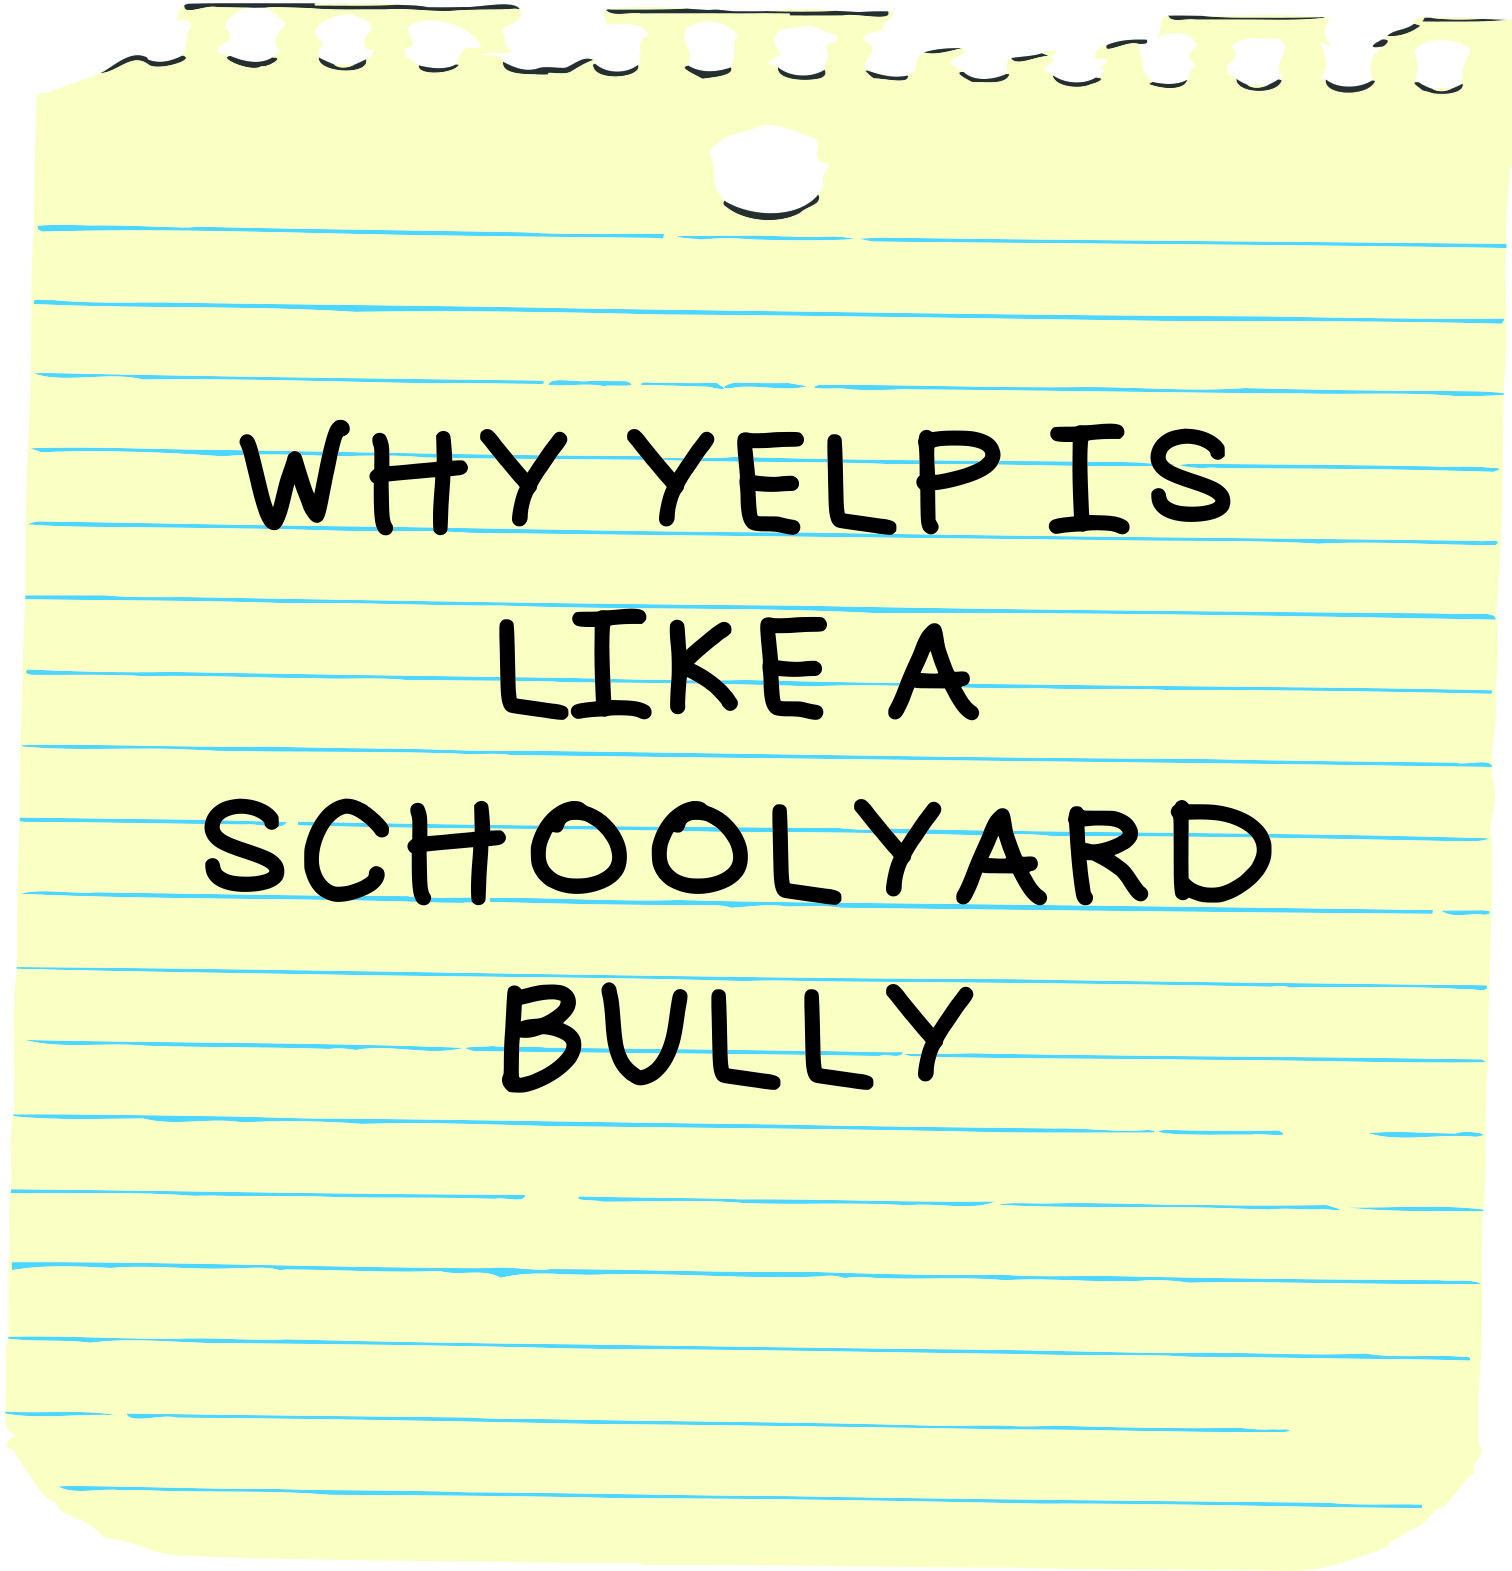 Why Yelp is Like a Schoolyard Bully